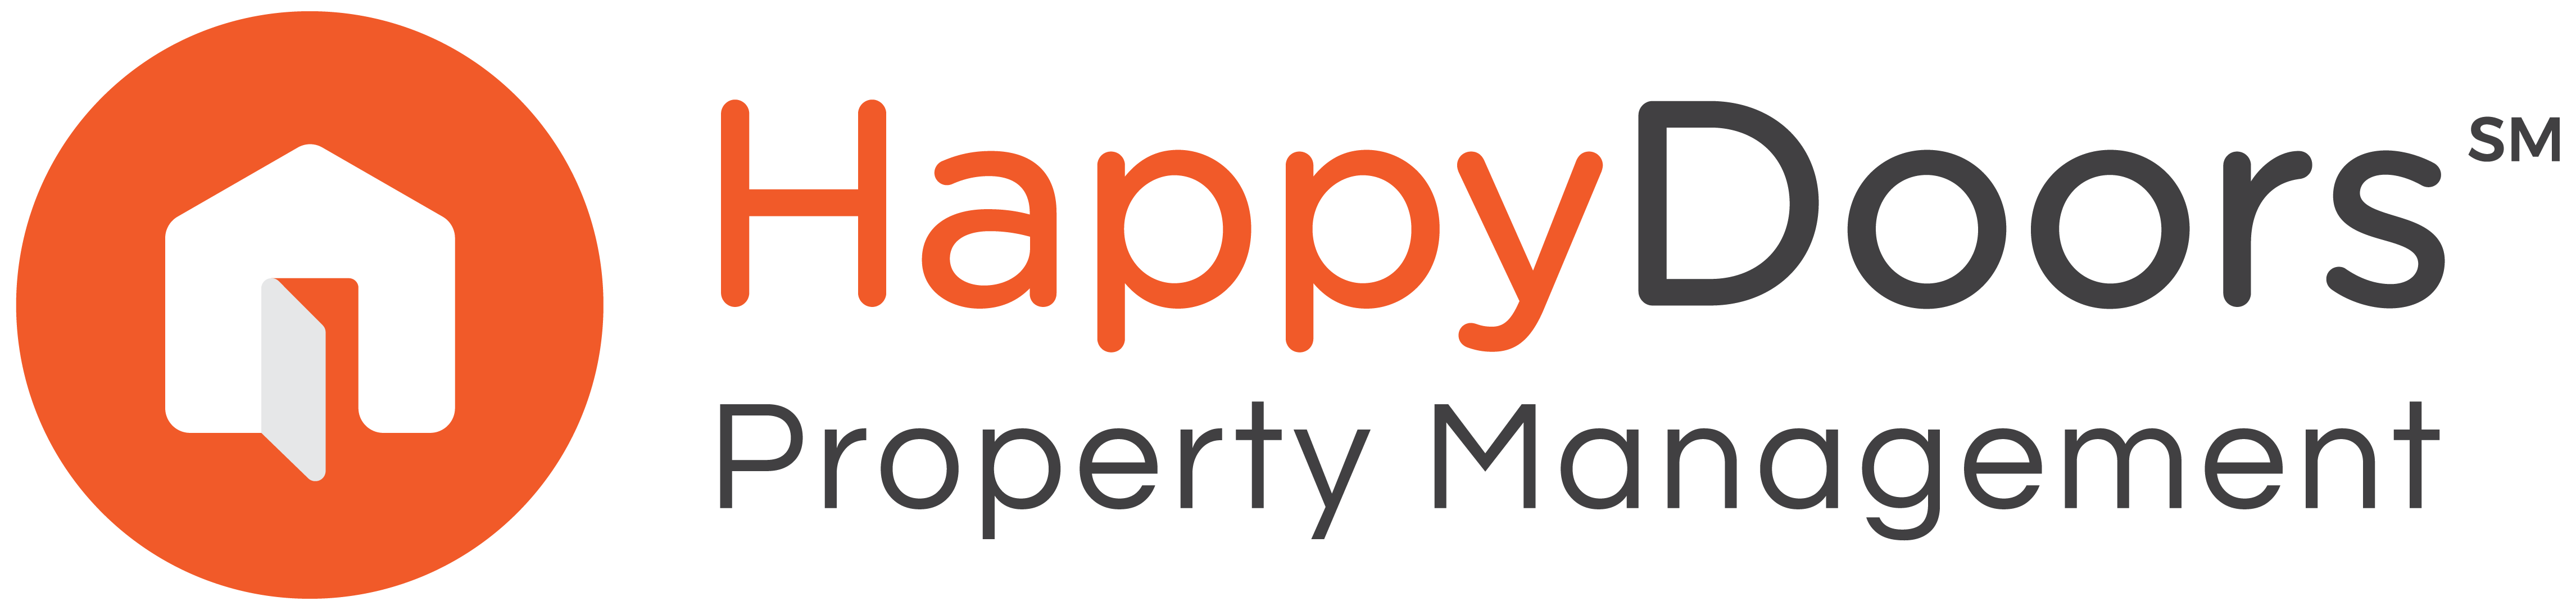 HappyDoors Property Management  sc 1 th 109 & HappyDoors Property Management in Honolulu